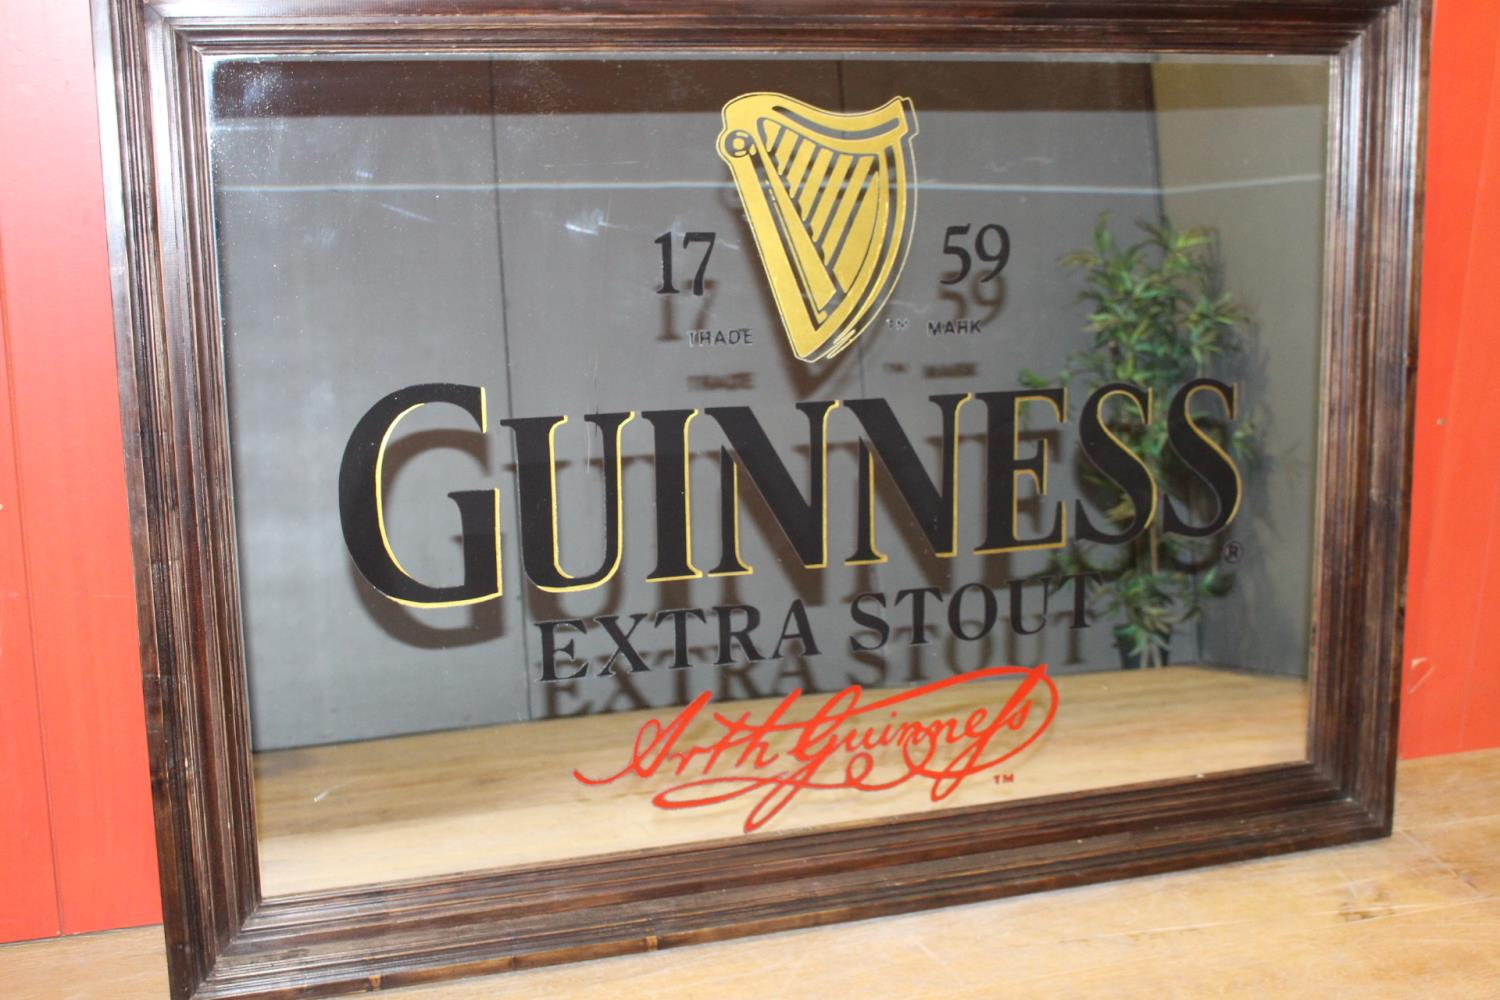 Guinness Extra Stout advertising mirror